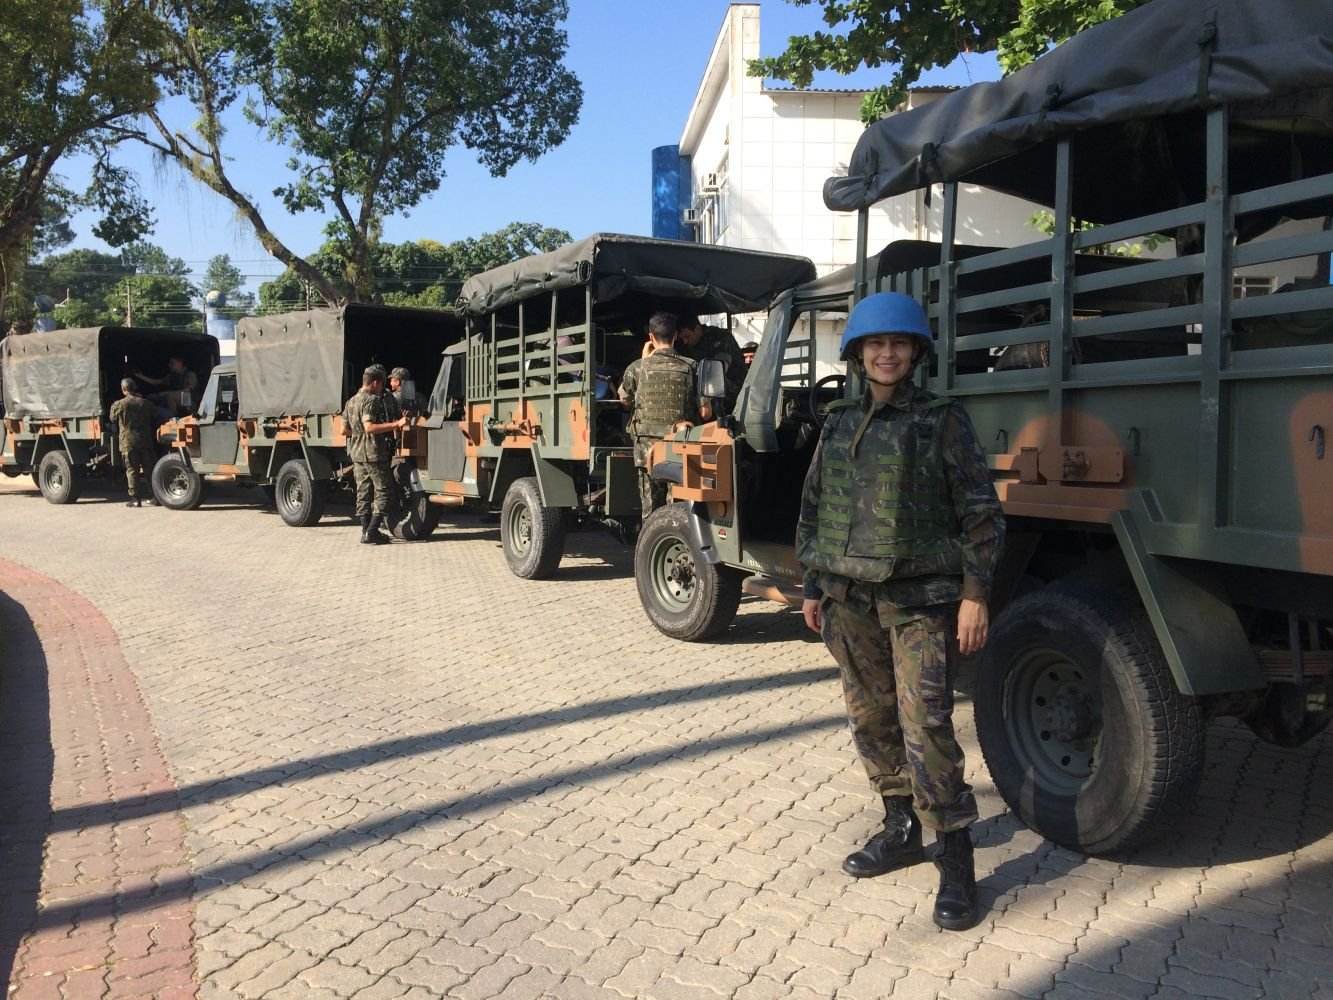 Brazilian Air Force Officer Joins Grand Scale Peacekeeping Mission